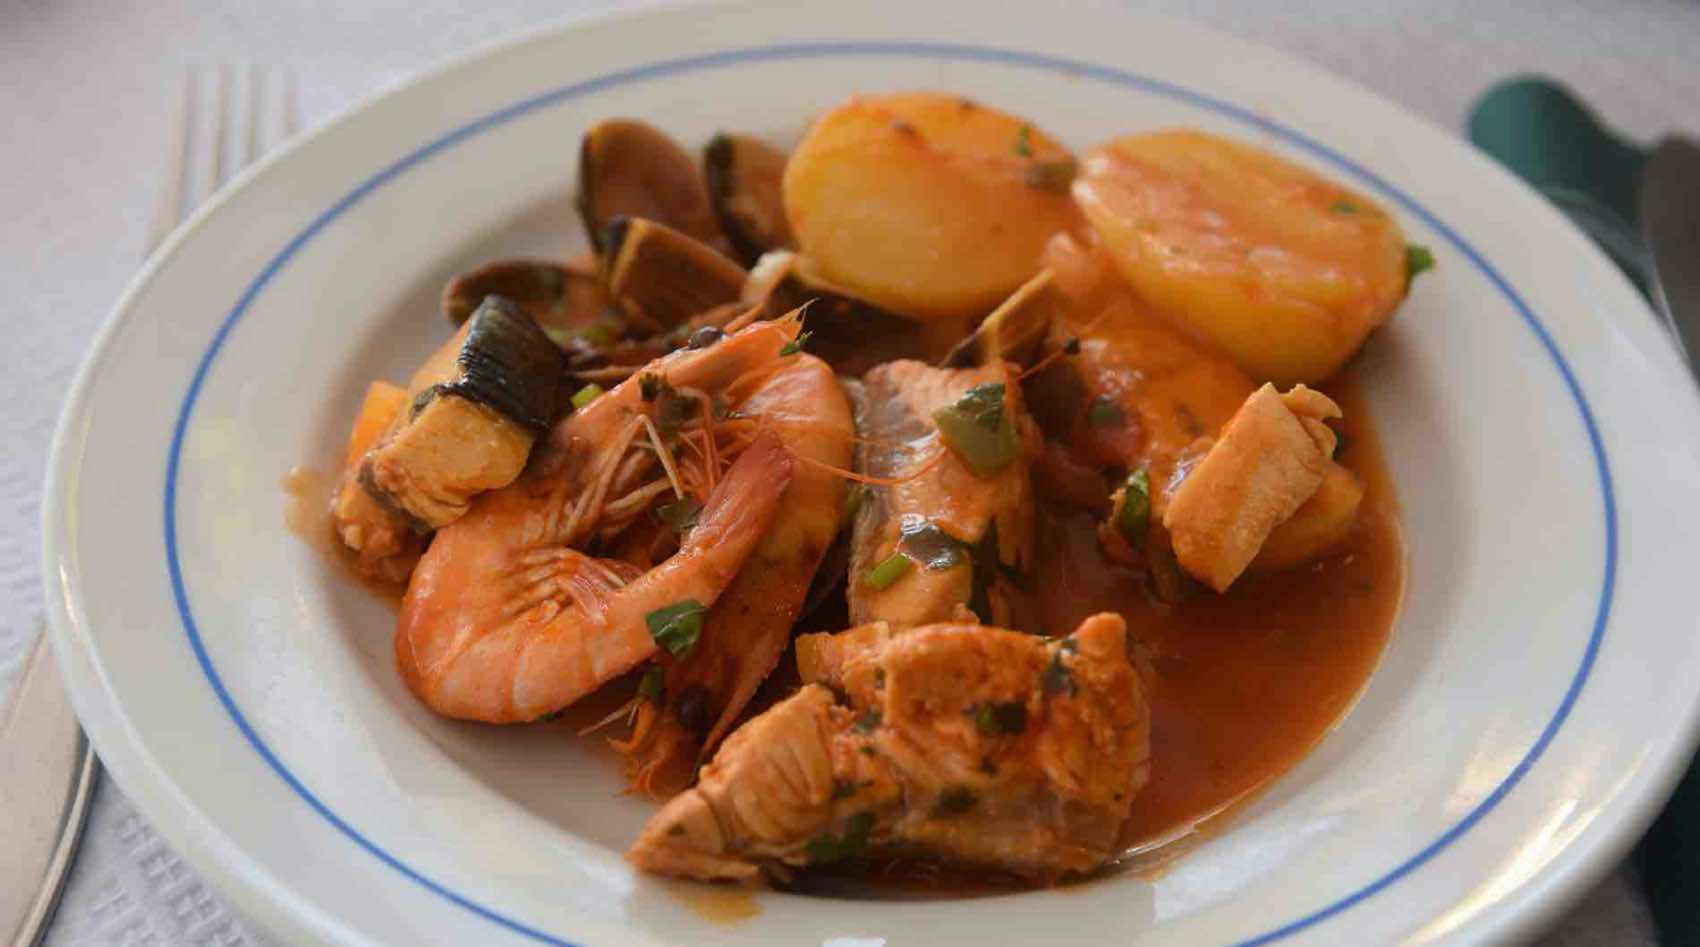 Local speciality: Order Cataplana, mixed fish and seafood, at Imperial.